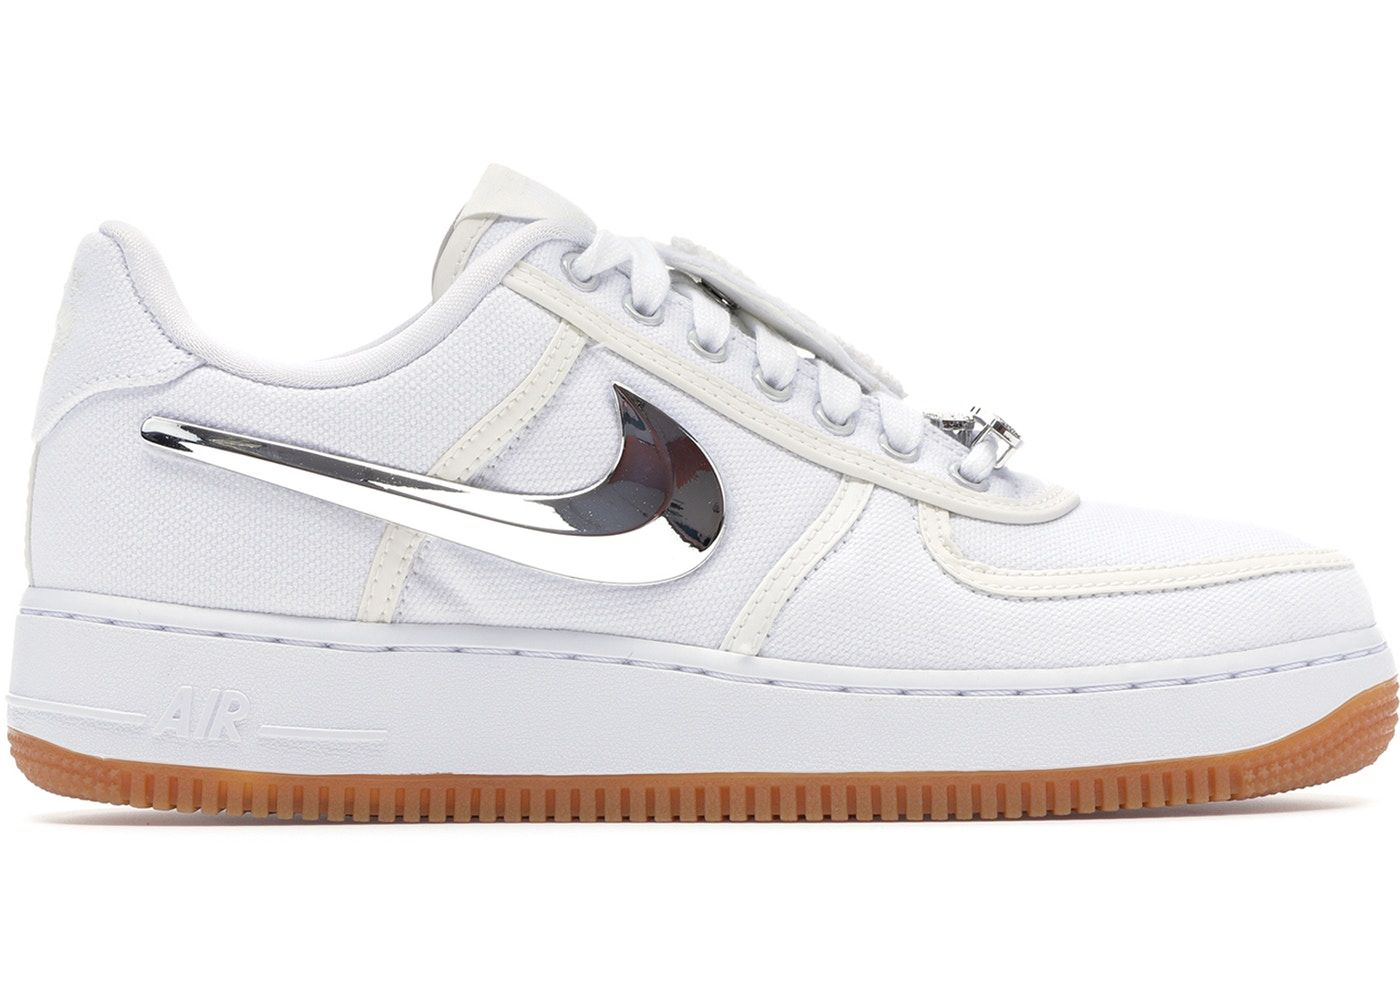 These shoes are the Travis Scott airforce 1's. They did a